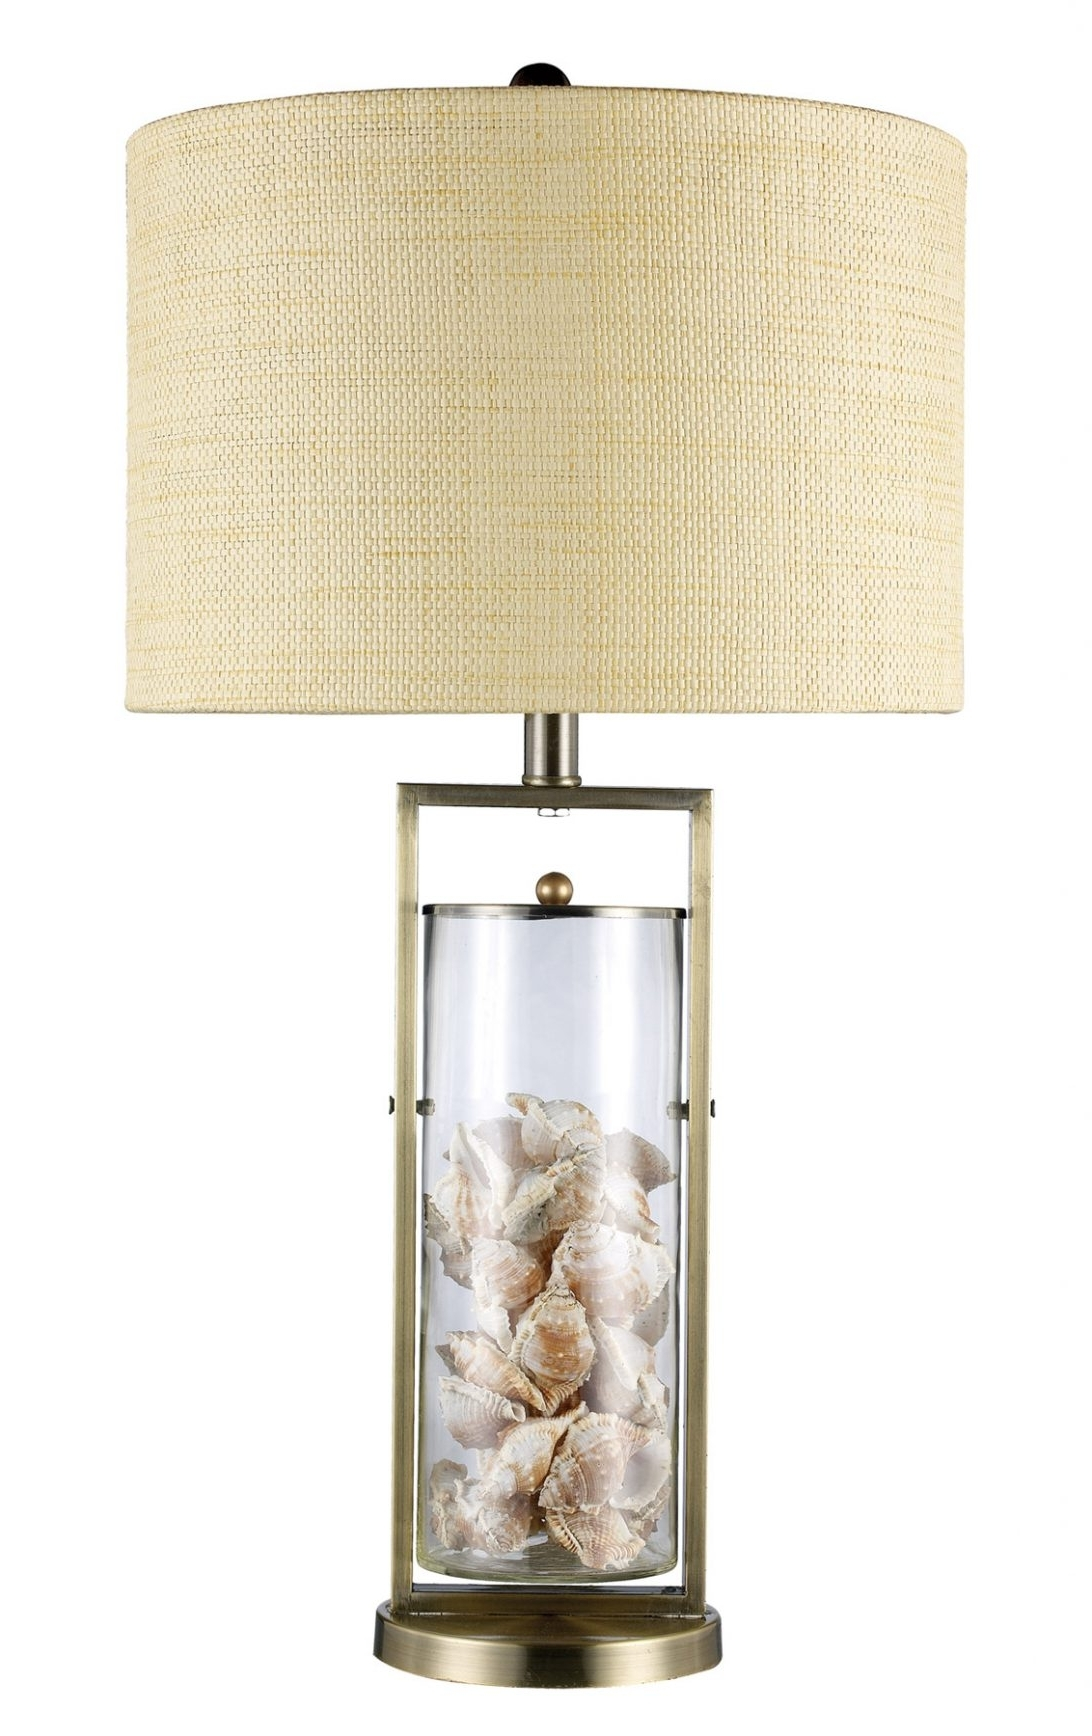 Preferred Overstock Living Room Table Lamps Intended For 67 Most Perfect Modern Floor Lamps Overstock Table For Living Room (View 11 of 15)